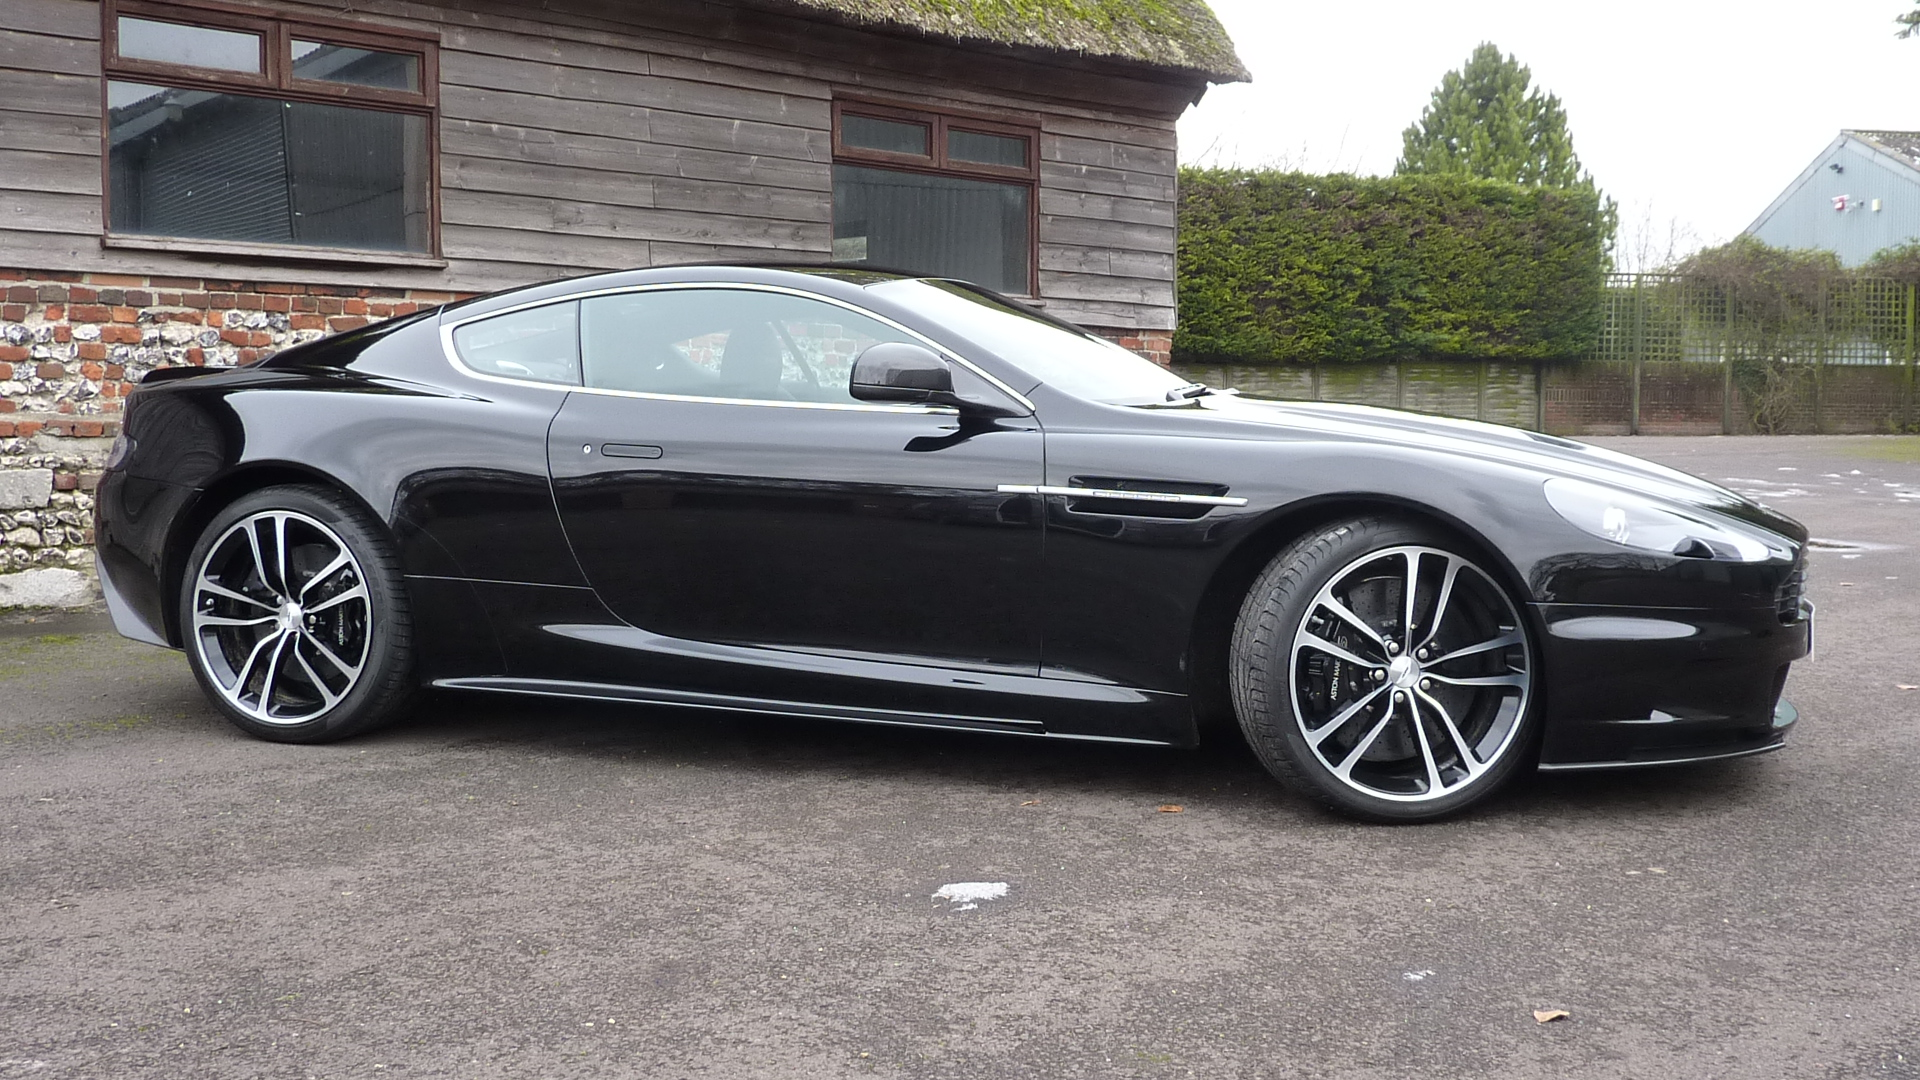 Aston Martin Dbs Ultimate 6 0 V12 Coupe 2dr Touchtronic